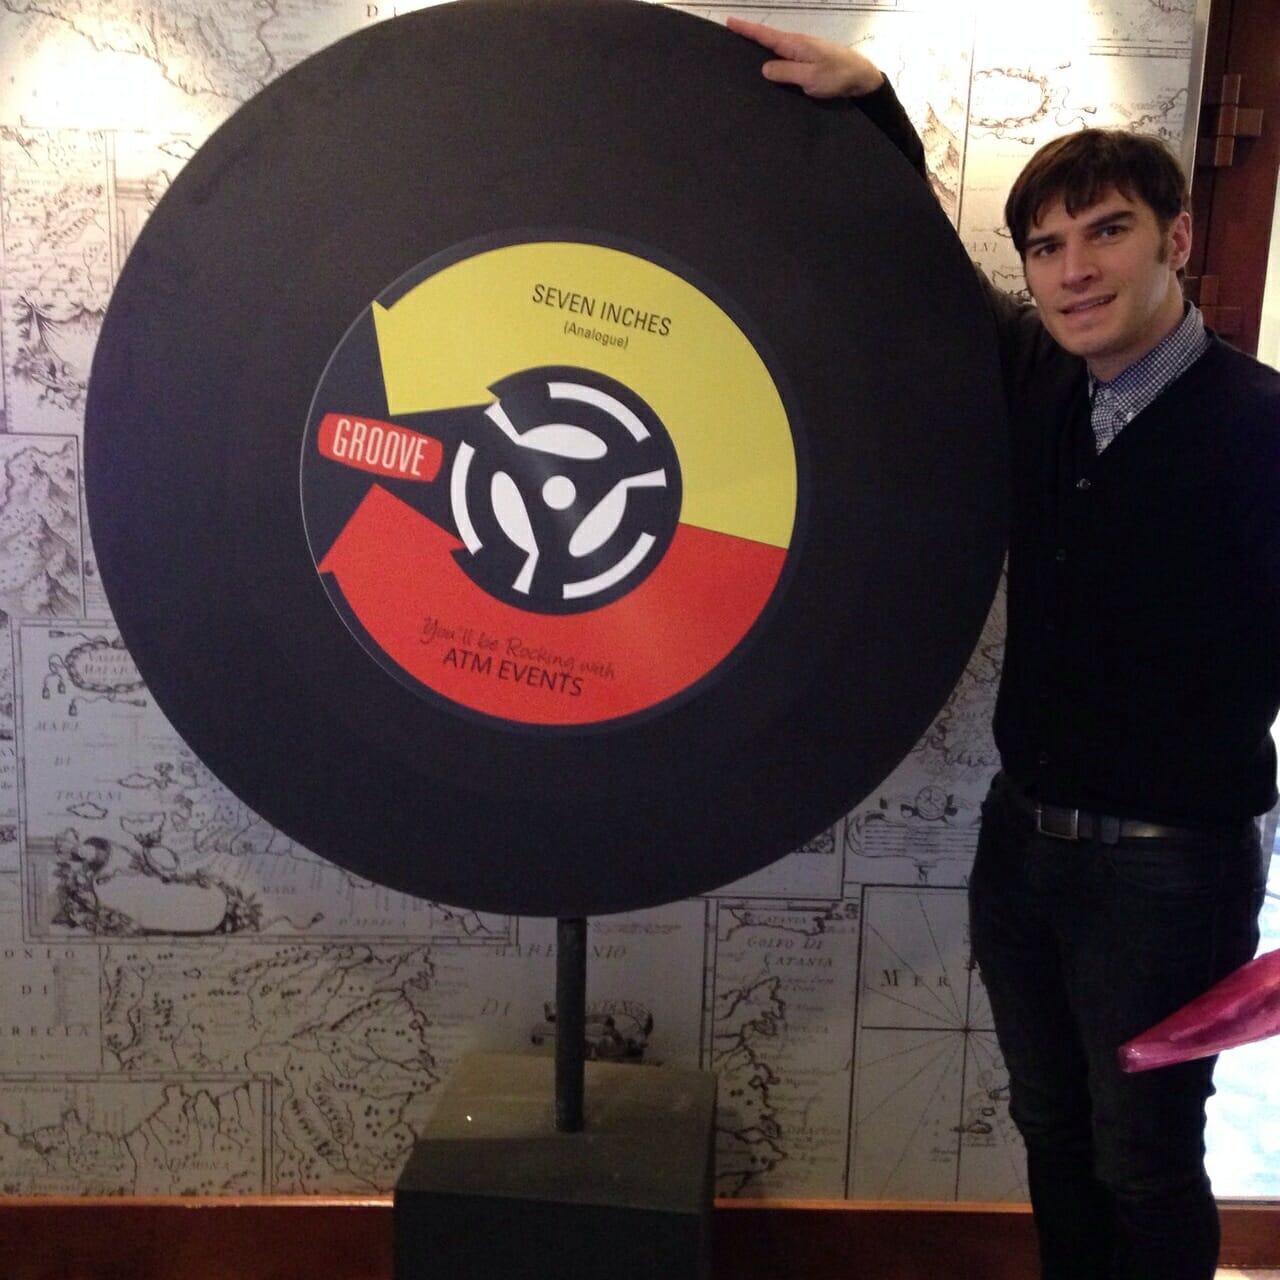 Jamie with a giant record